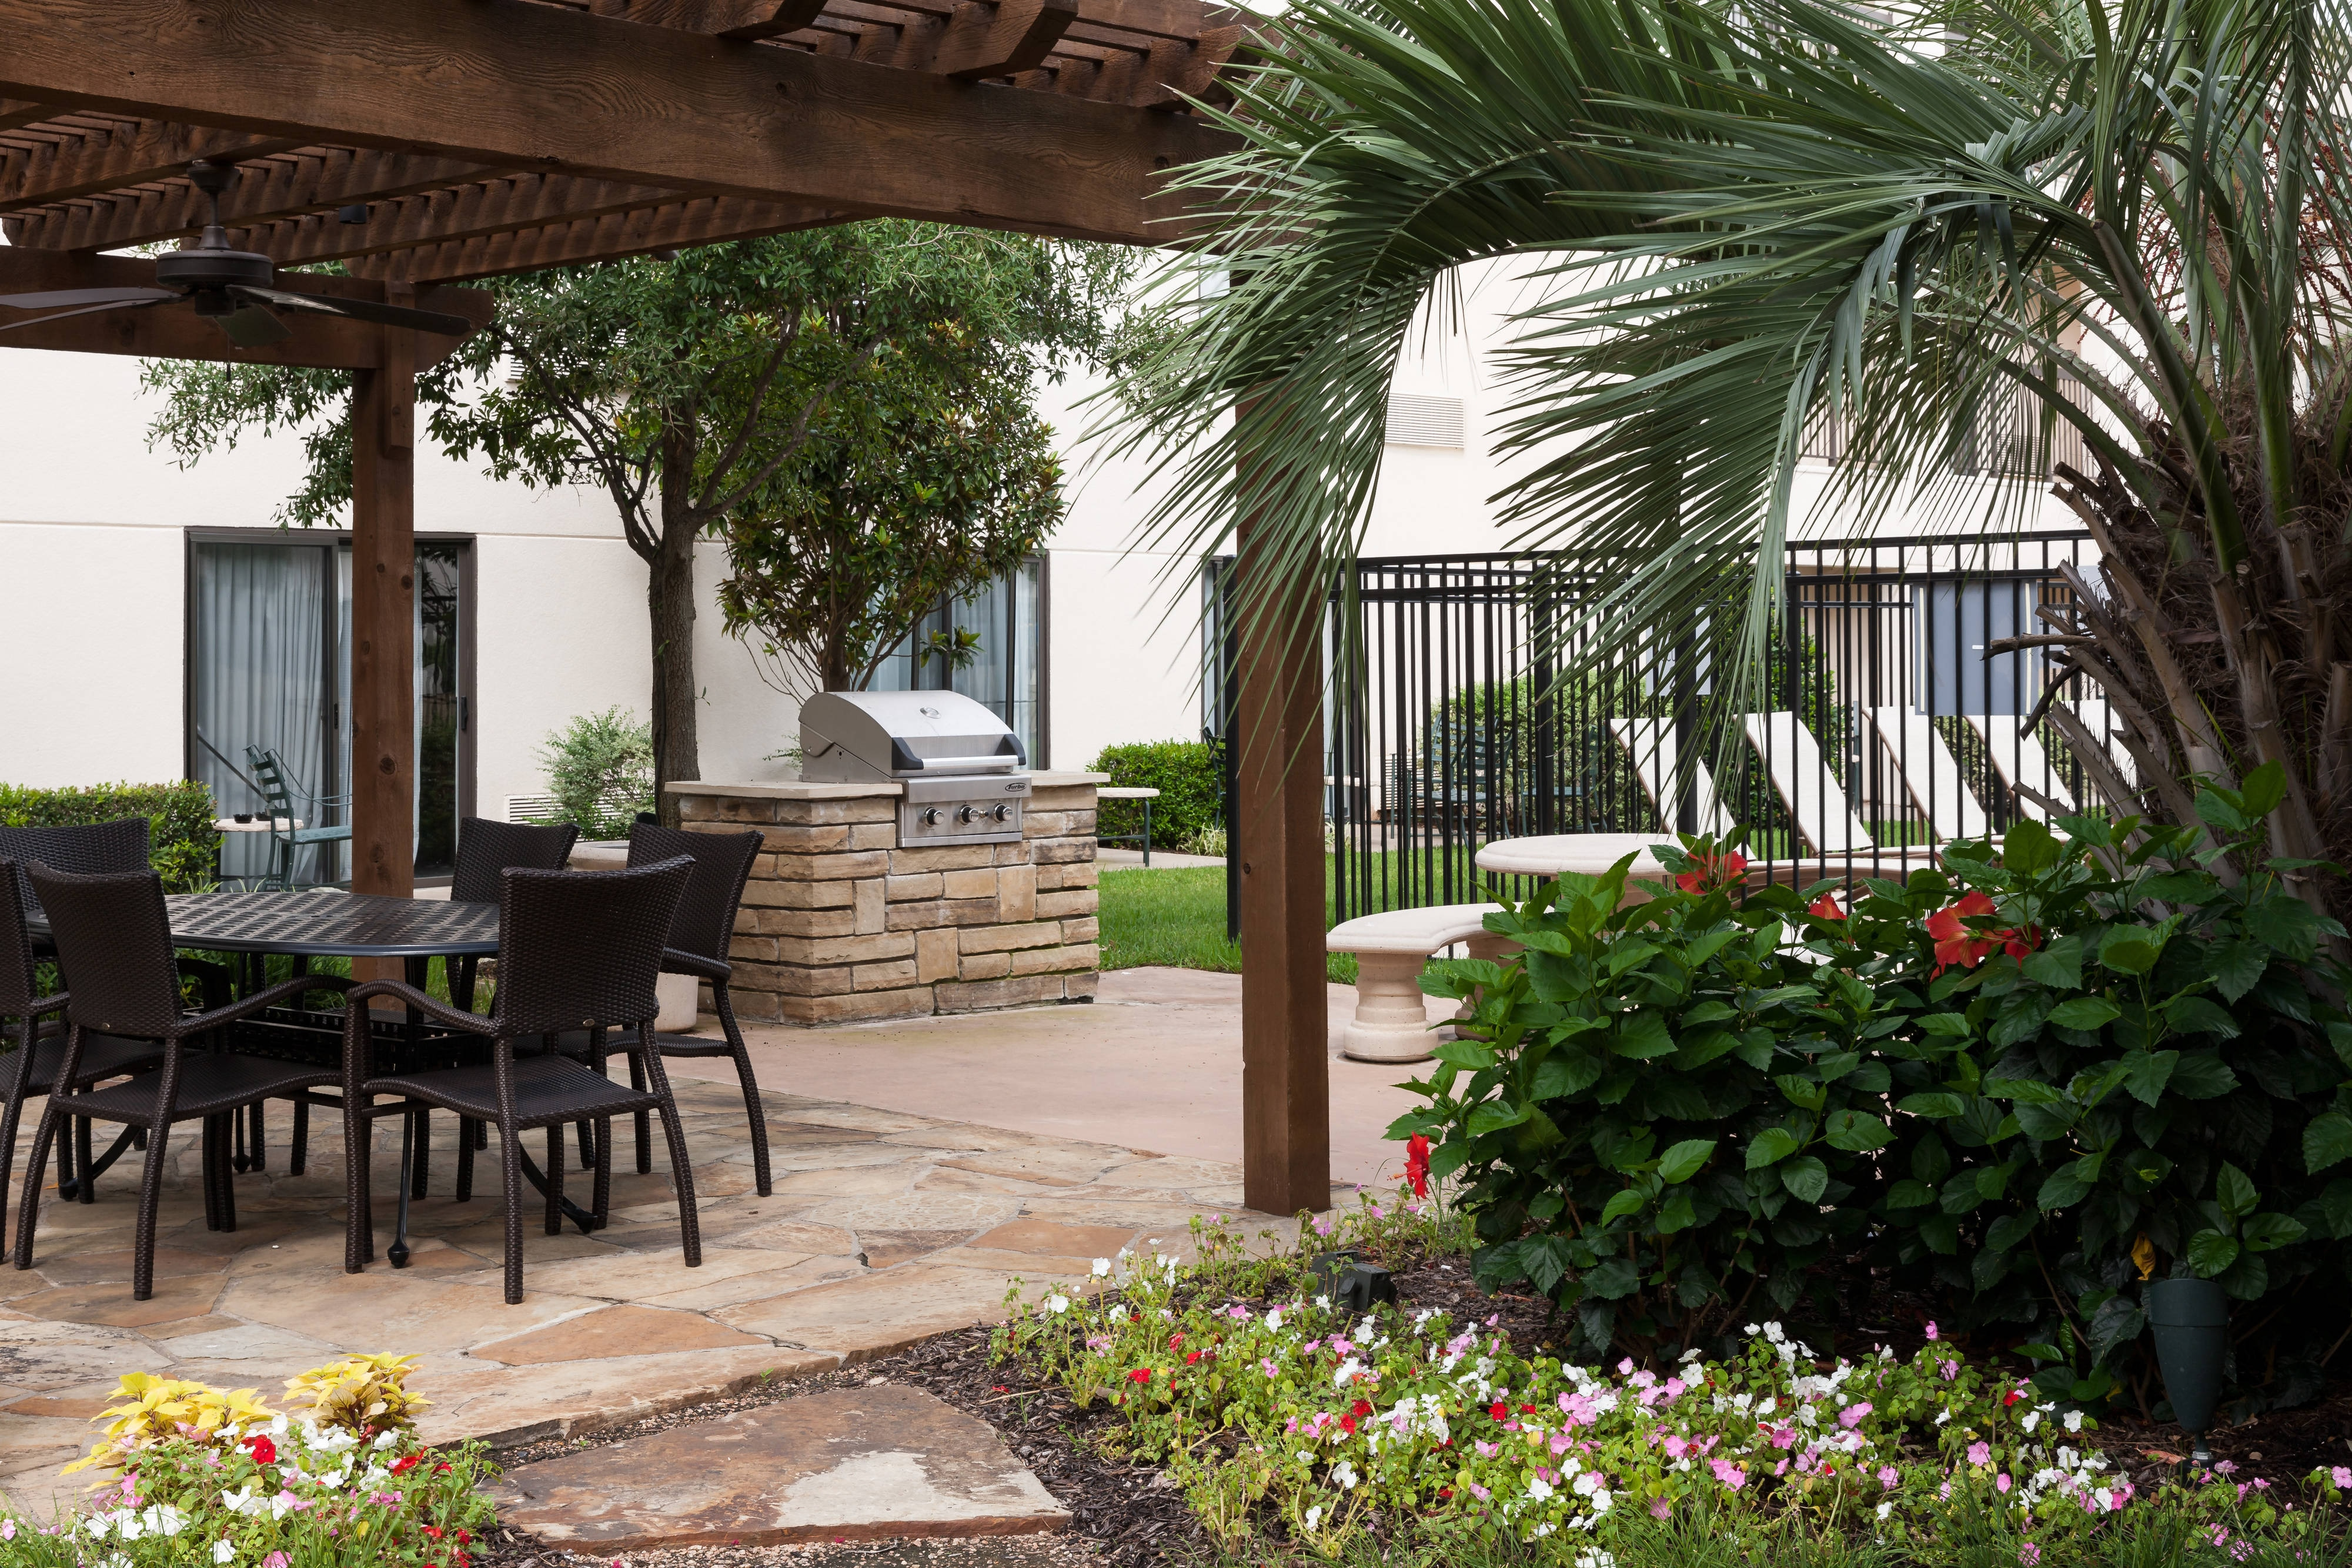 Courtyard Waco Outdoor Terrace